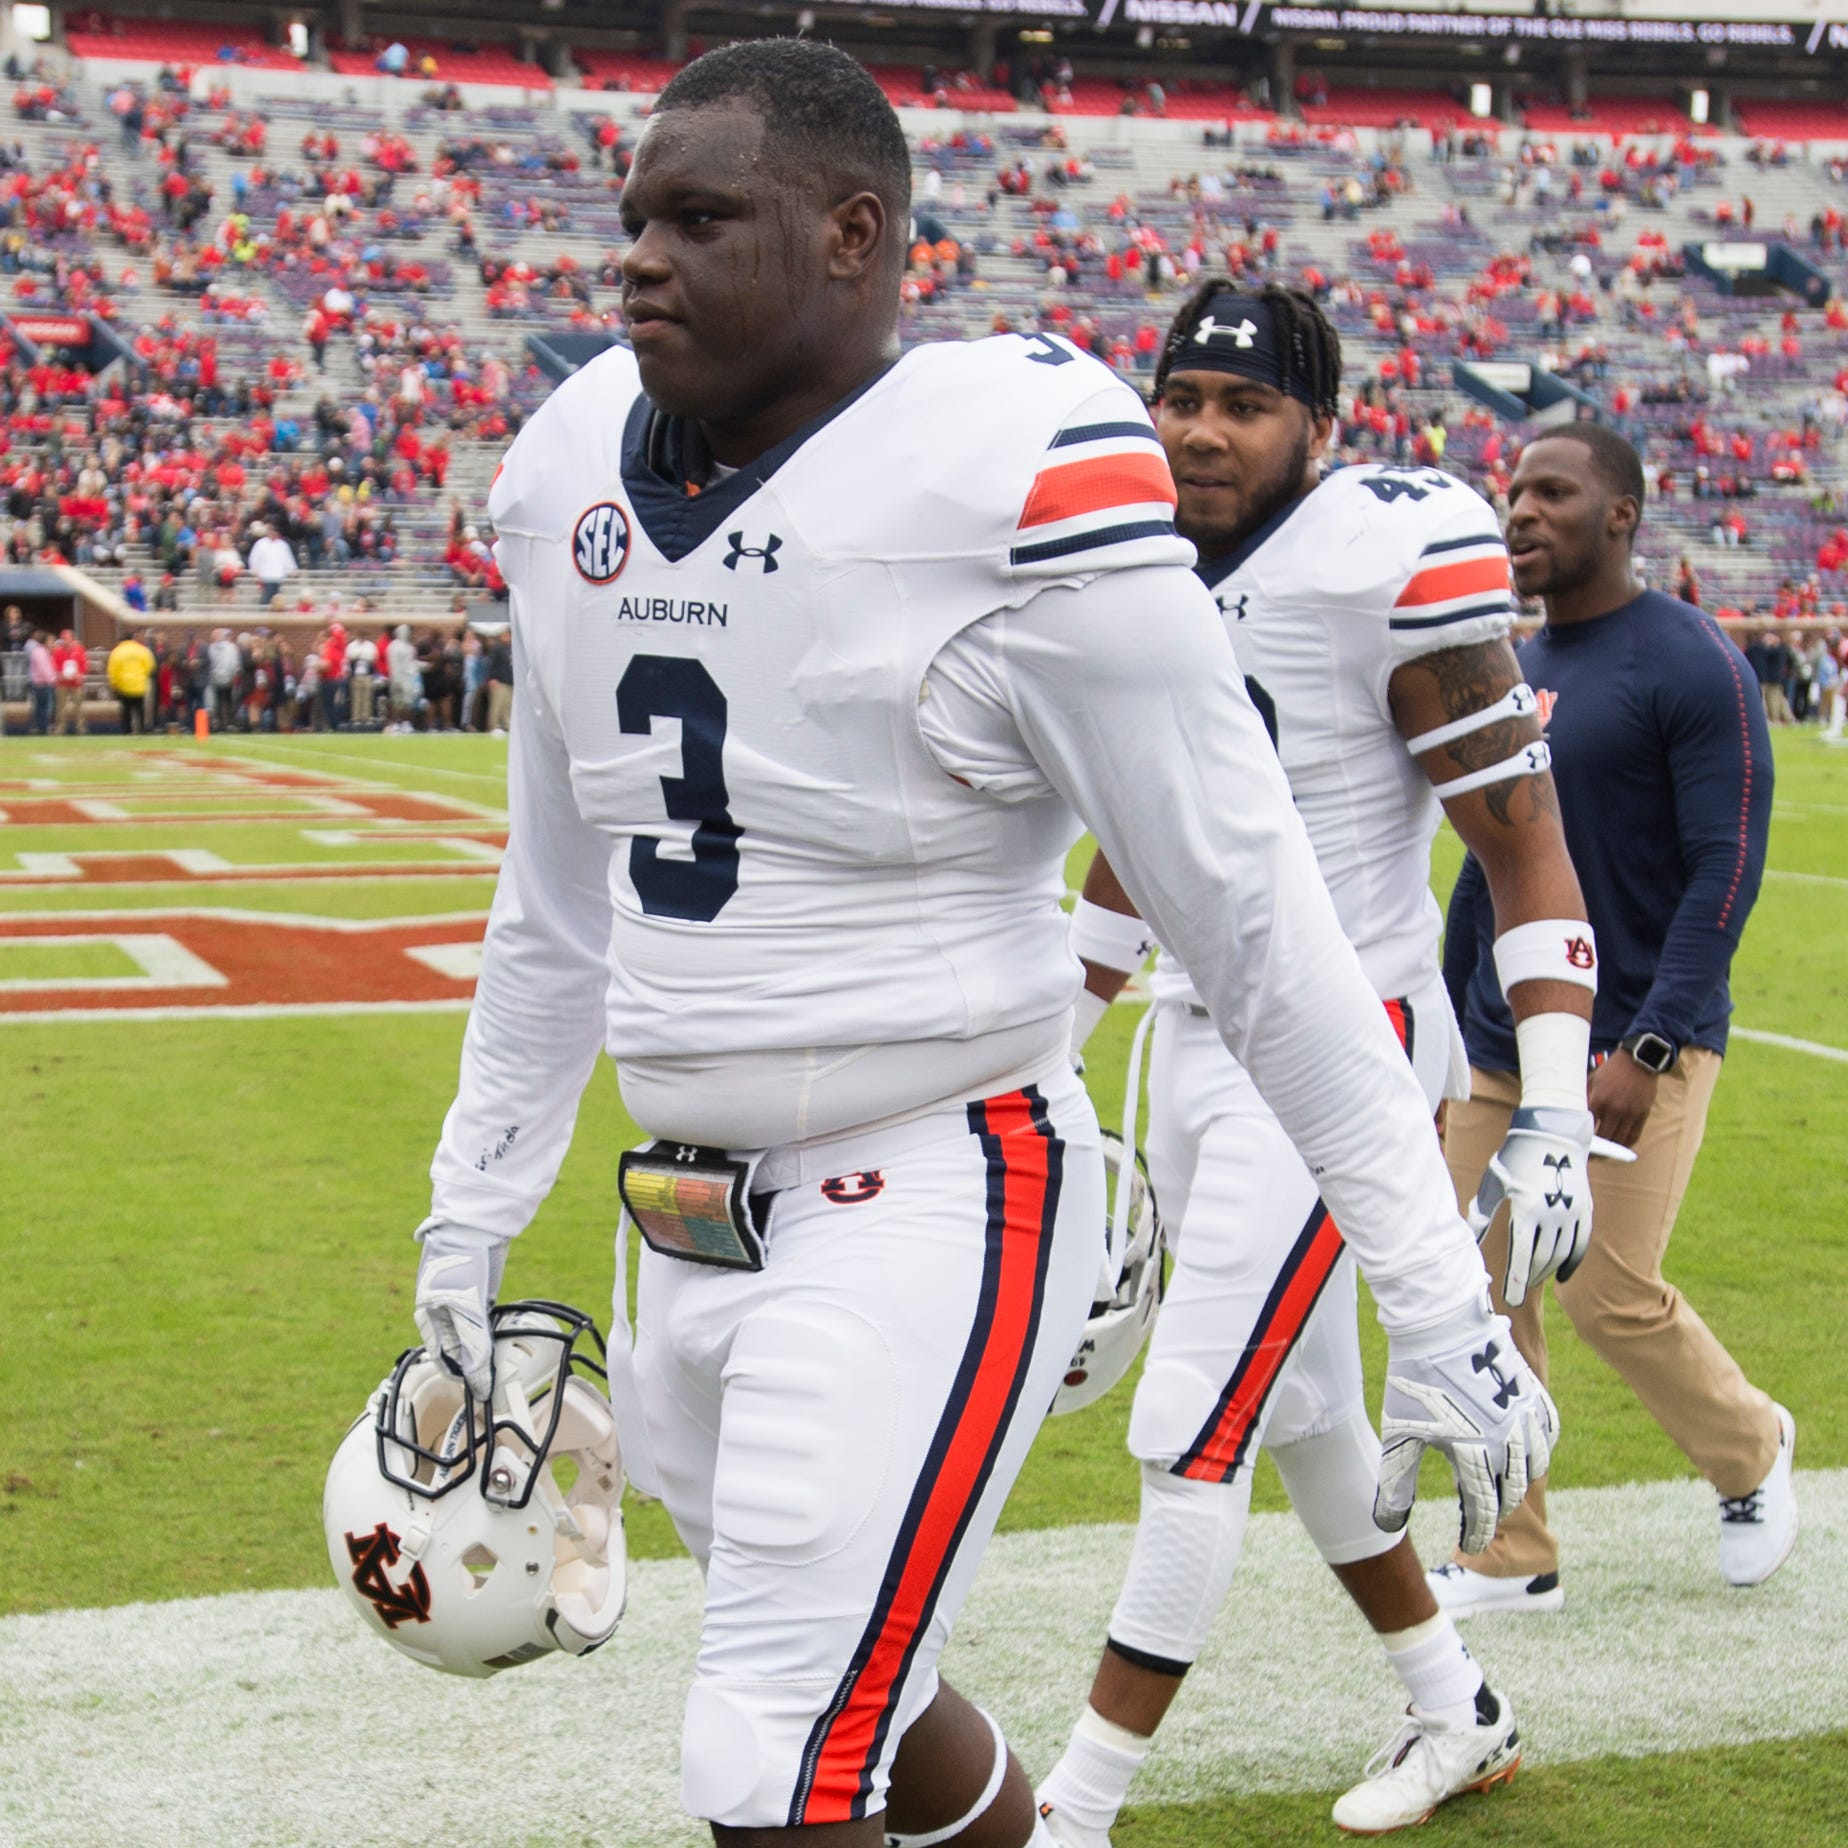 For Marlon Davidson, returning to Auburn was a business decision